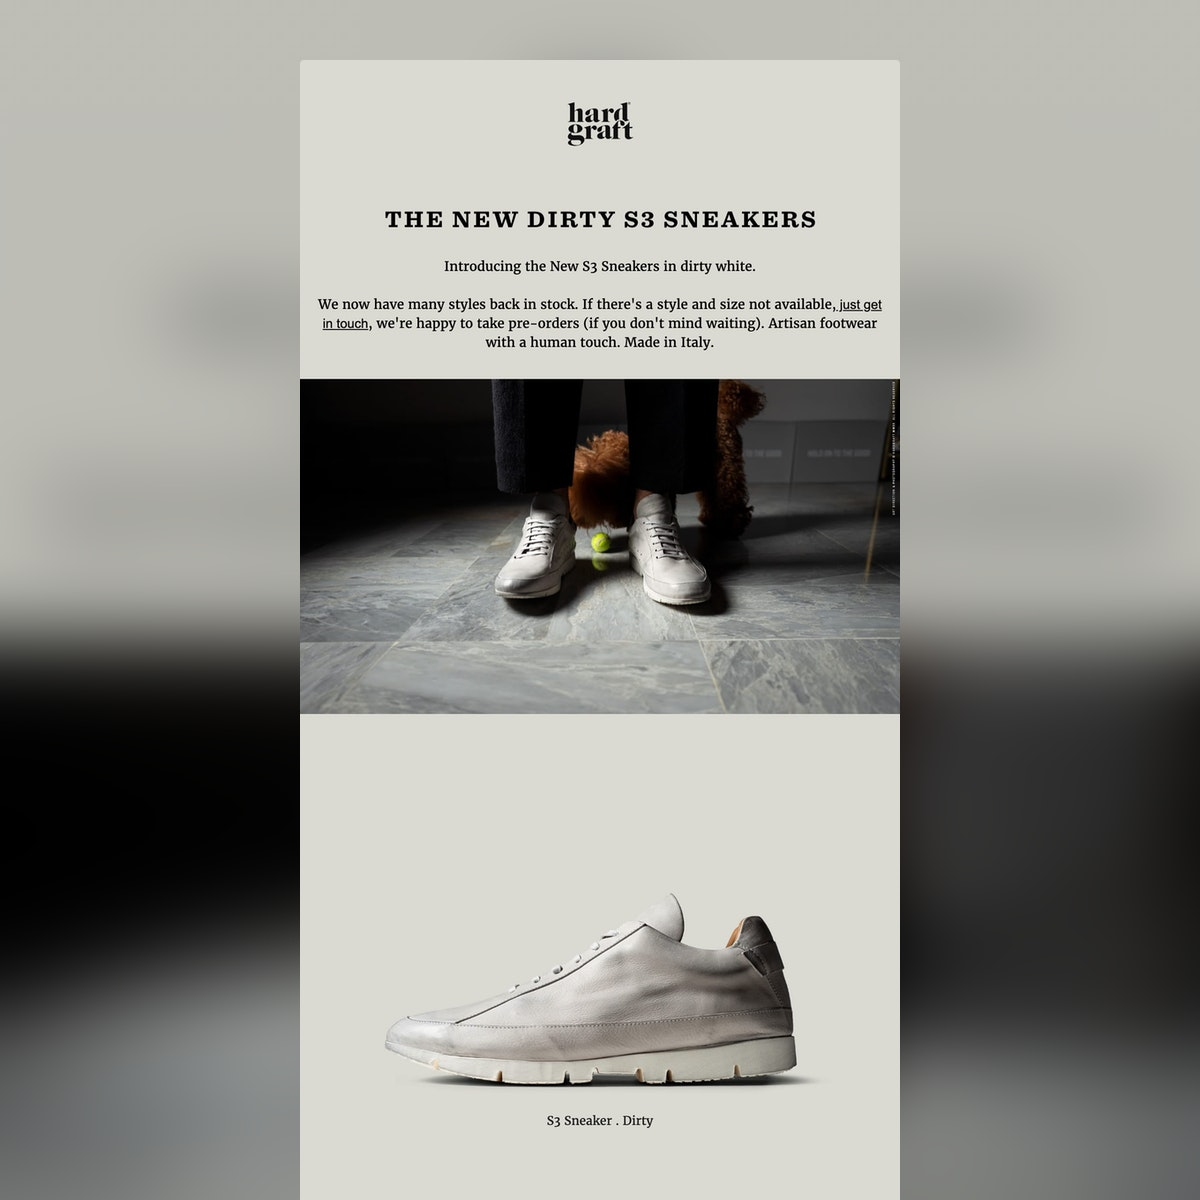 The New Dirty S3 Sneakers